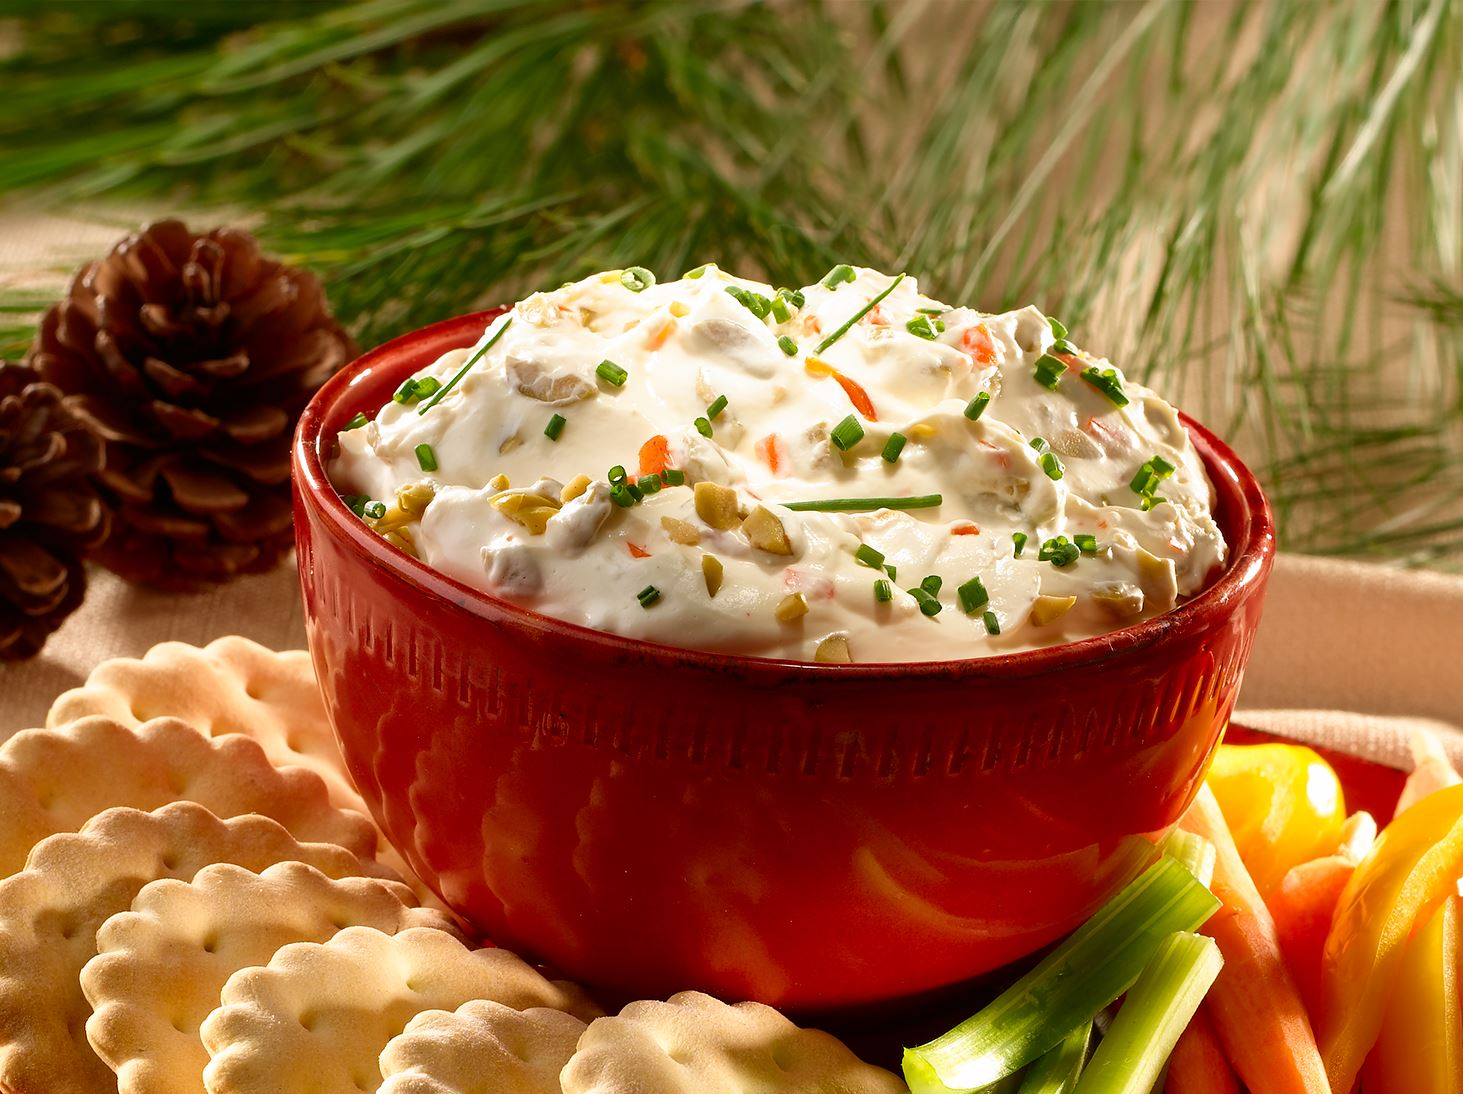 Creamy Olive Dip with Spanish Olives